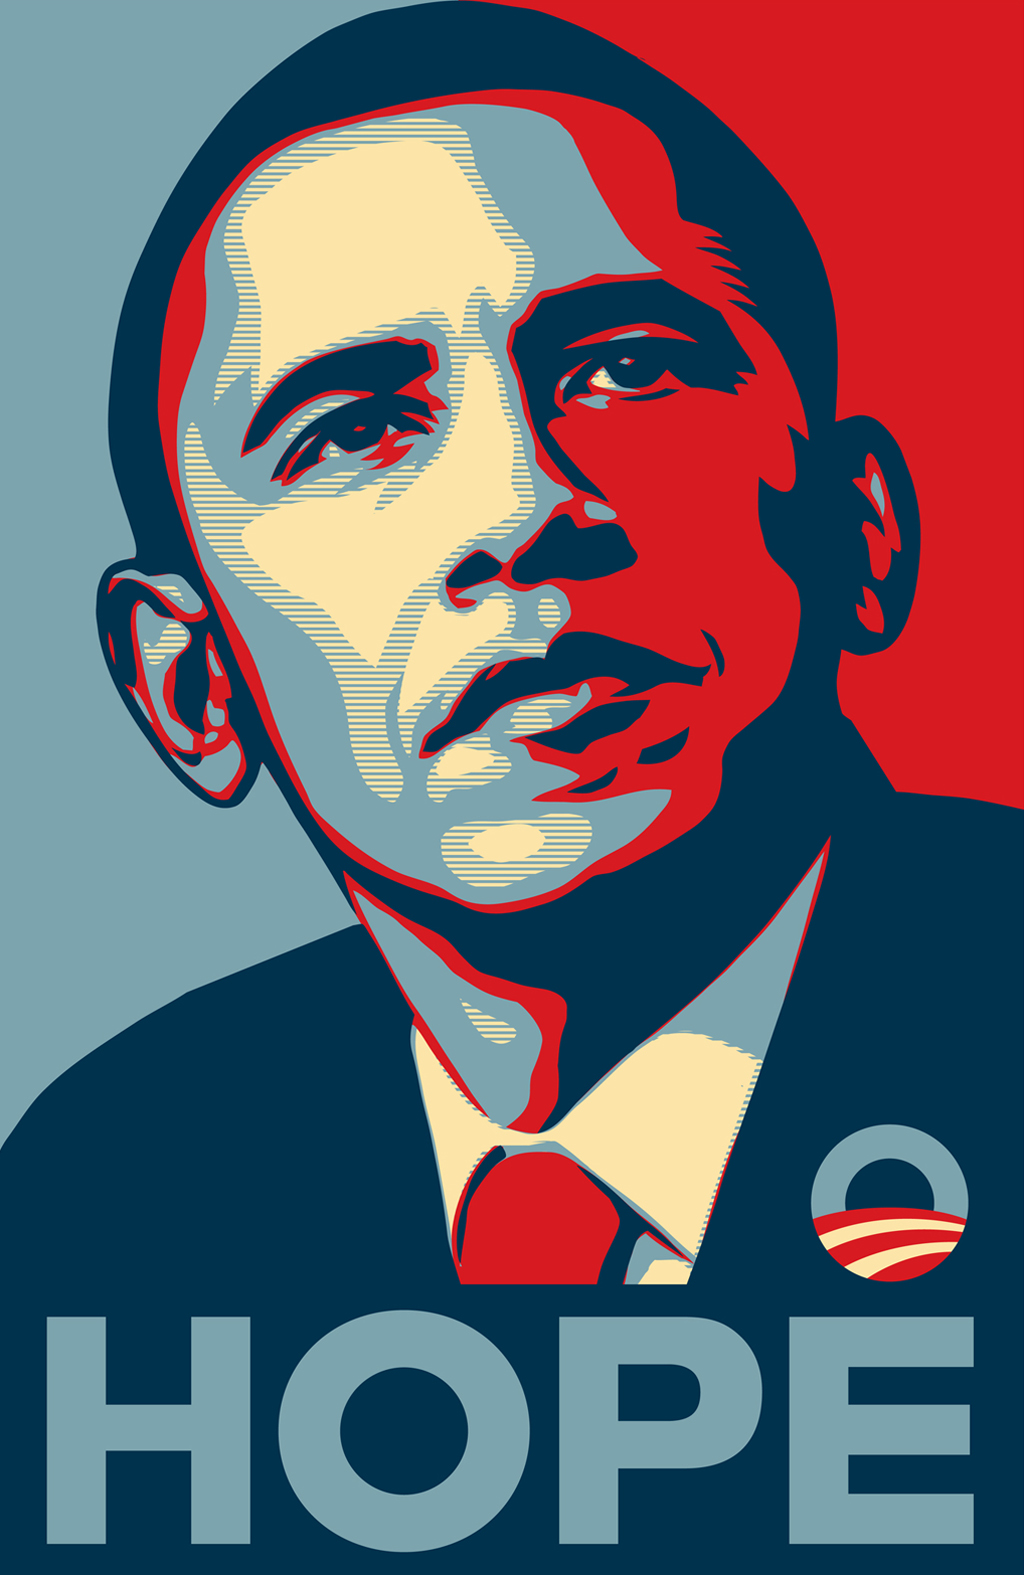 https://i0.wp.com/www.vectors1.com/media/obey/obey-giant-22-obama-hope.jpg